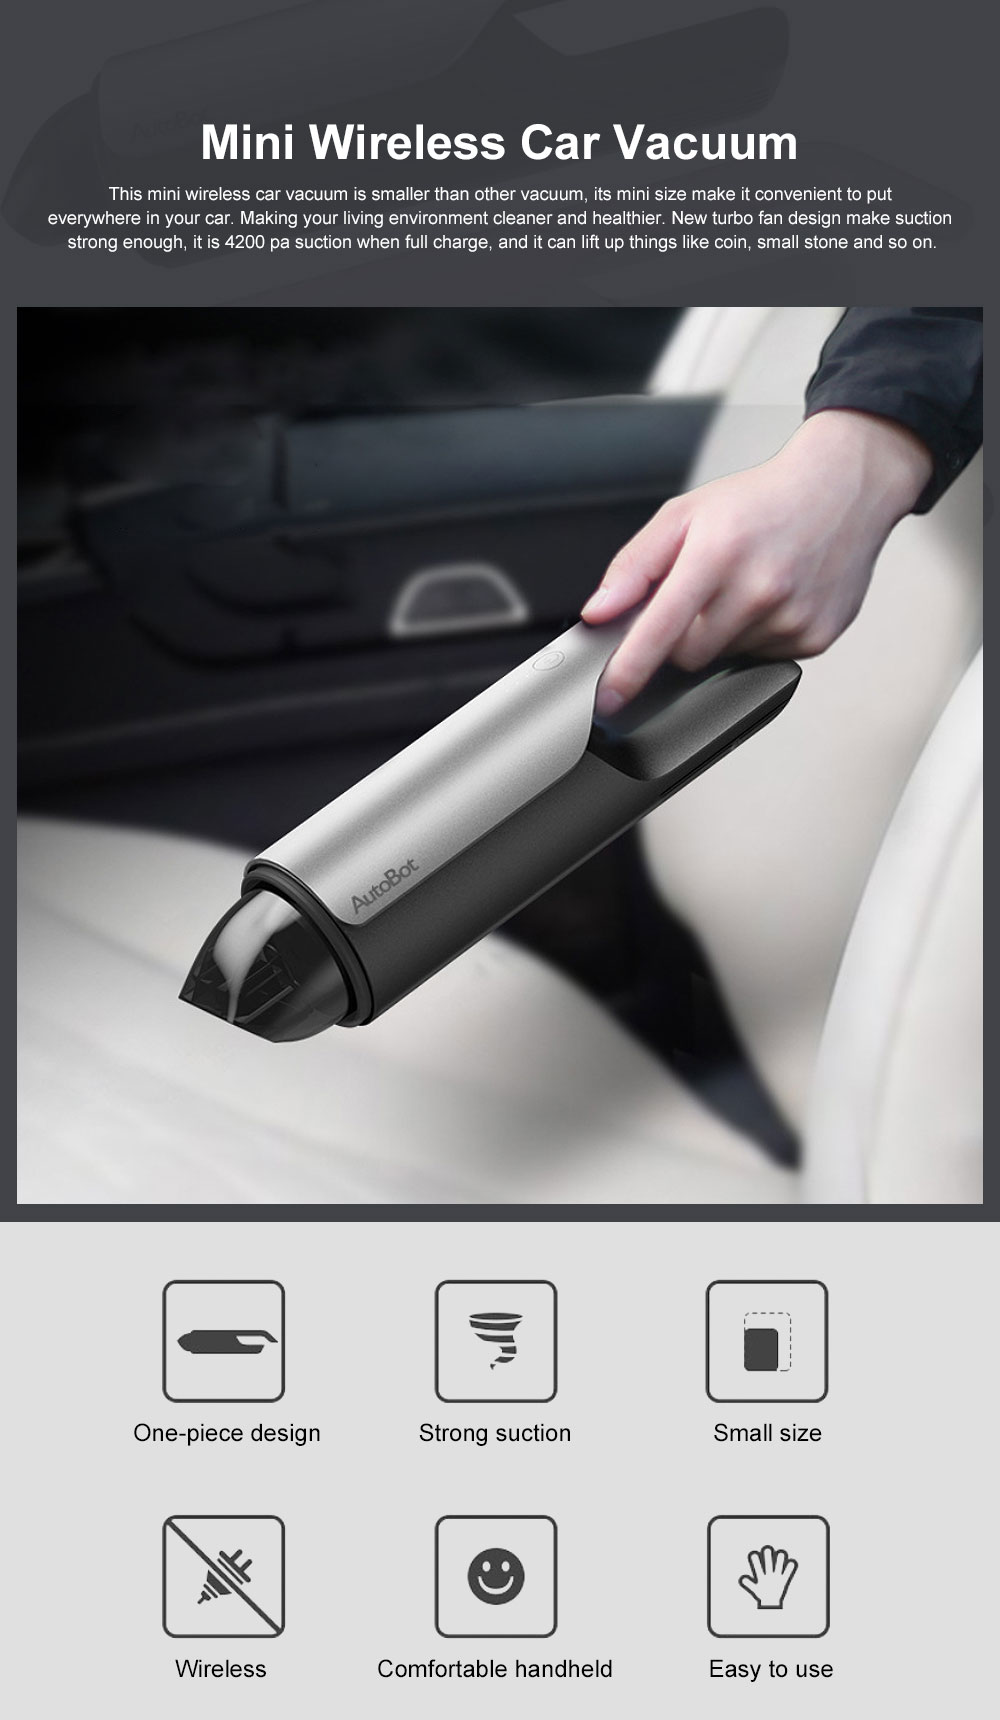 Mini Wireless Car Vacuum HEPA Filter Smart Car Cleaner with Strong Suction Handheld Car Cleaning Machine 0